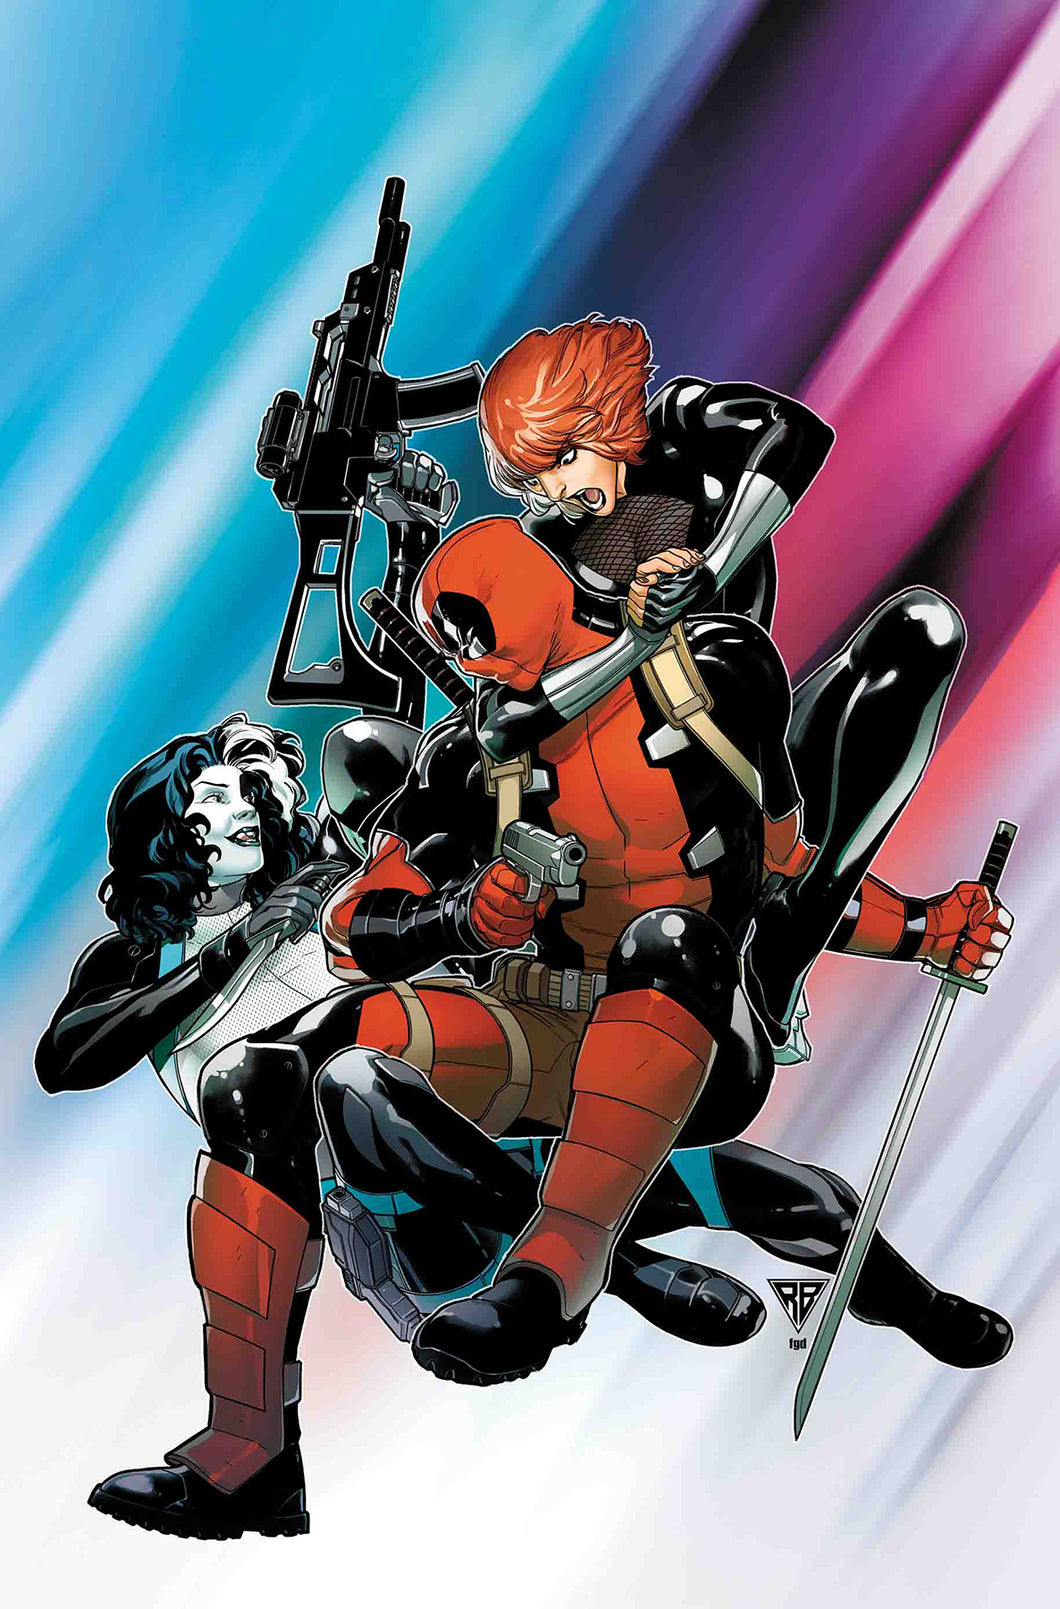 DOMINO HOTSHOTS #2 (OF 5)